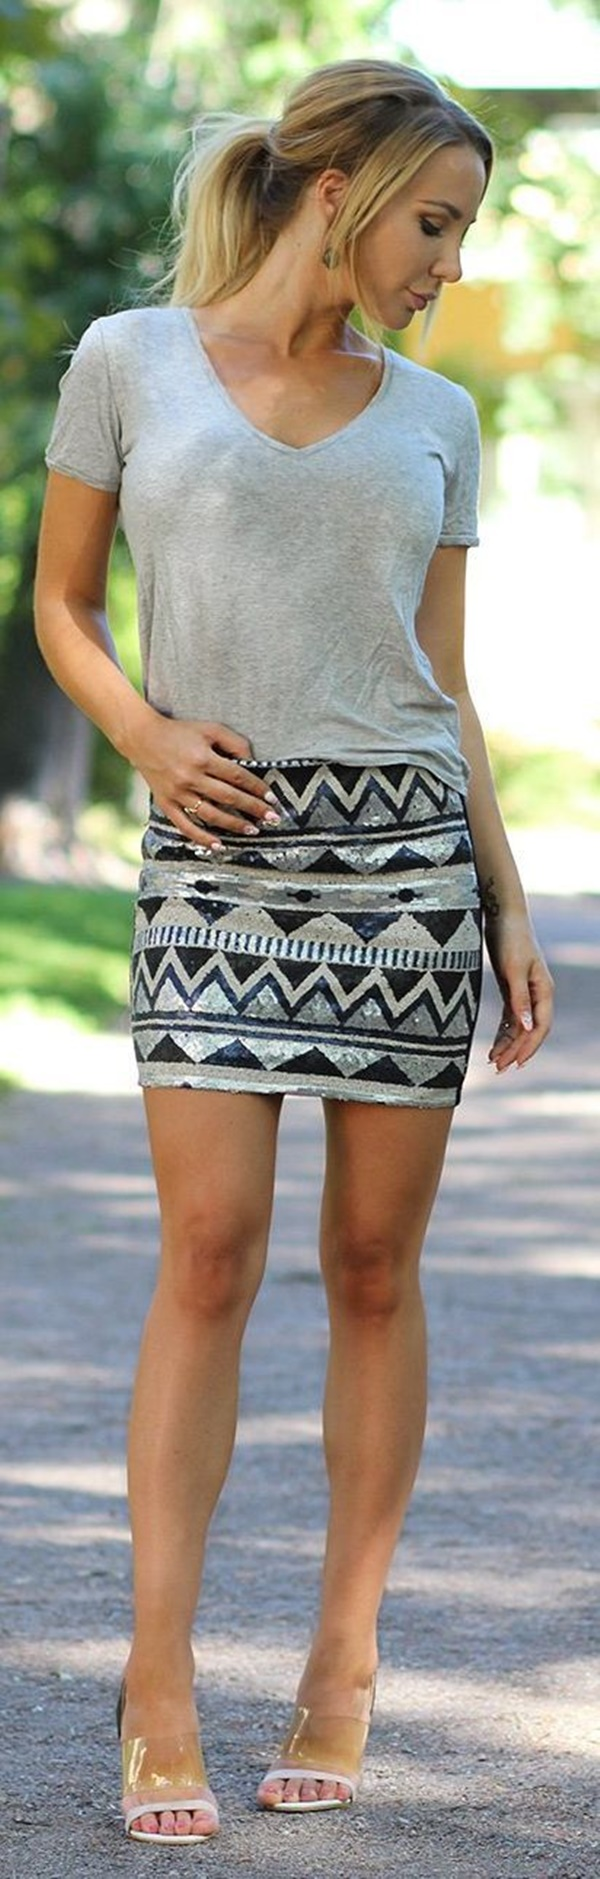 aztec outfits (13)